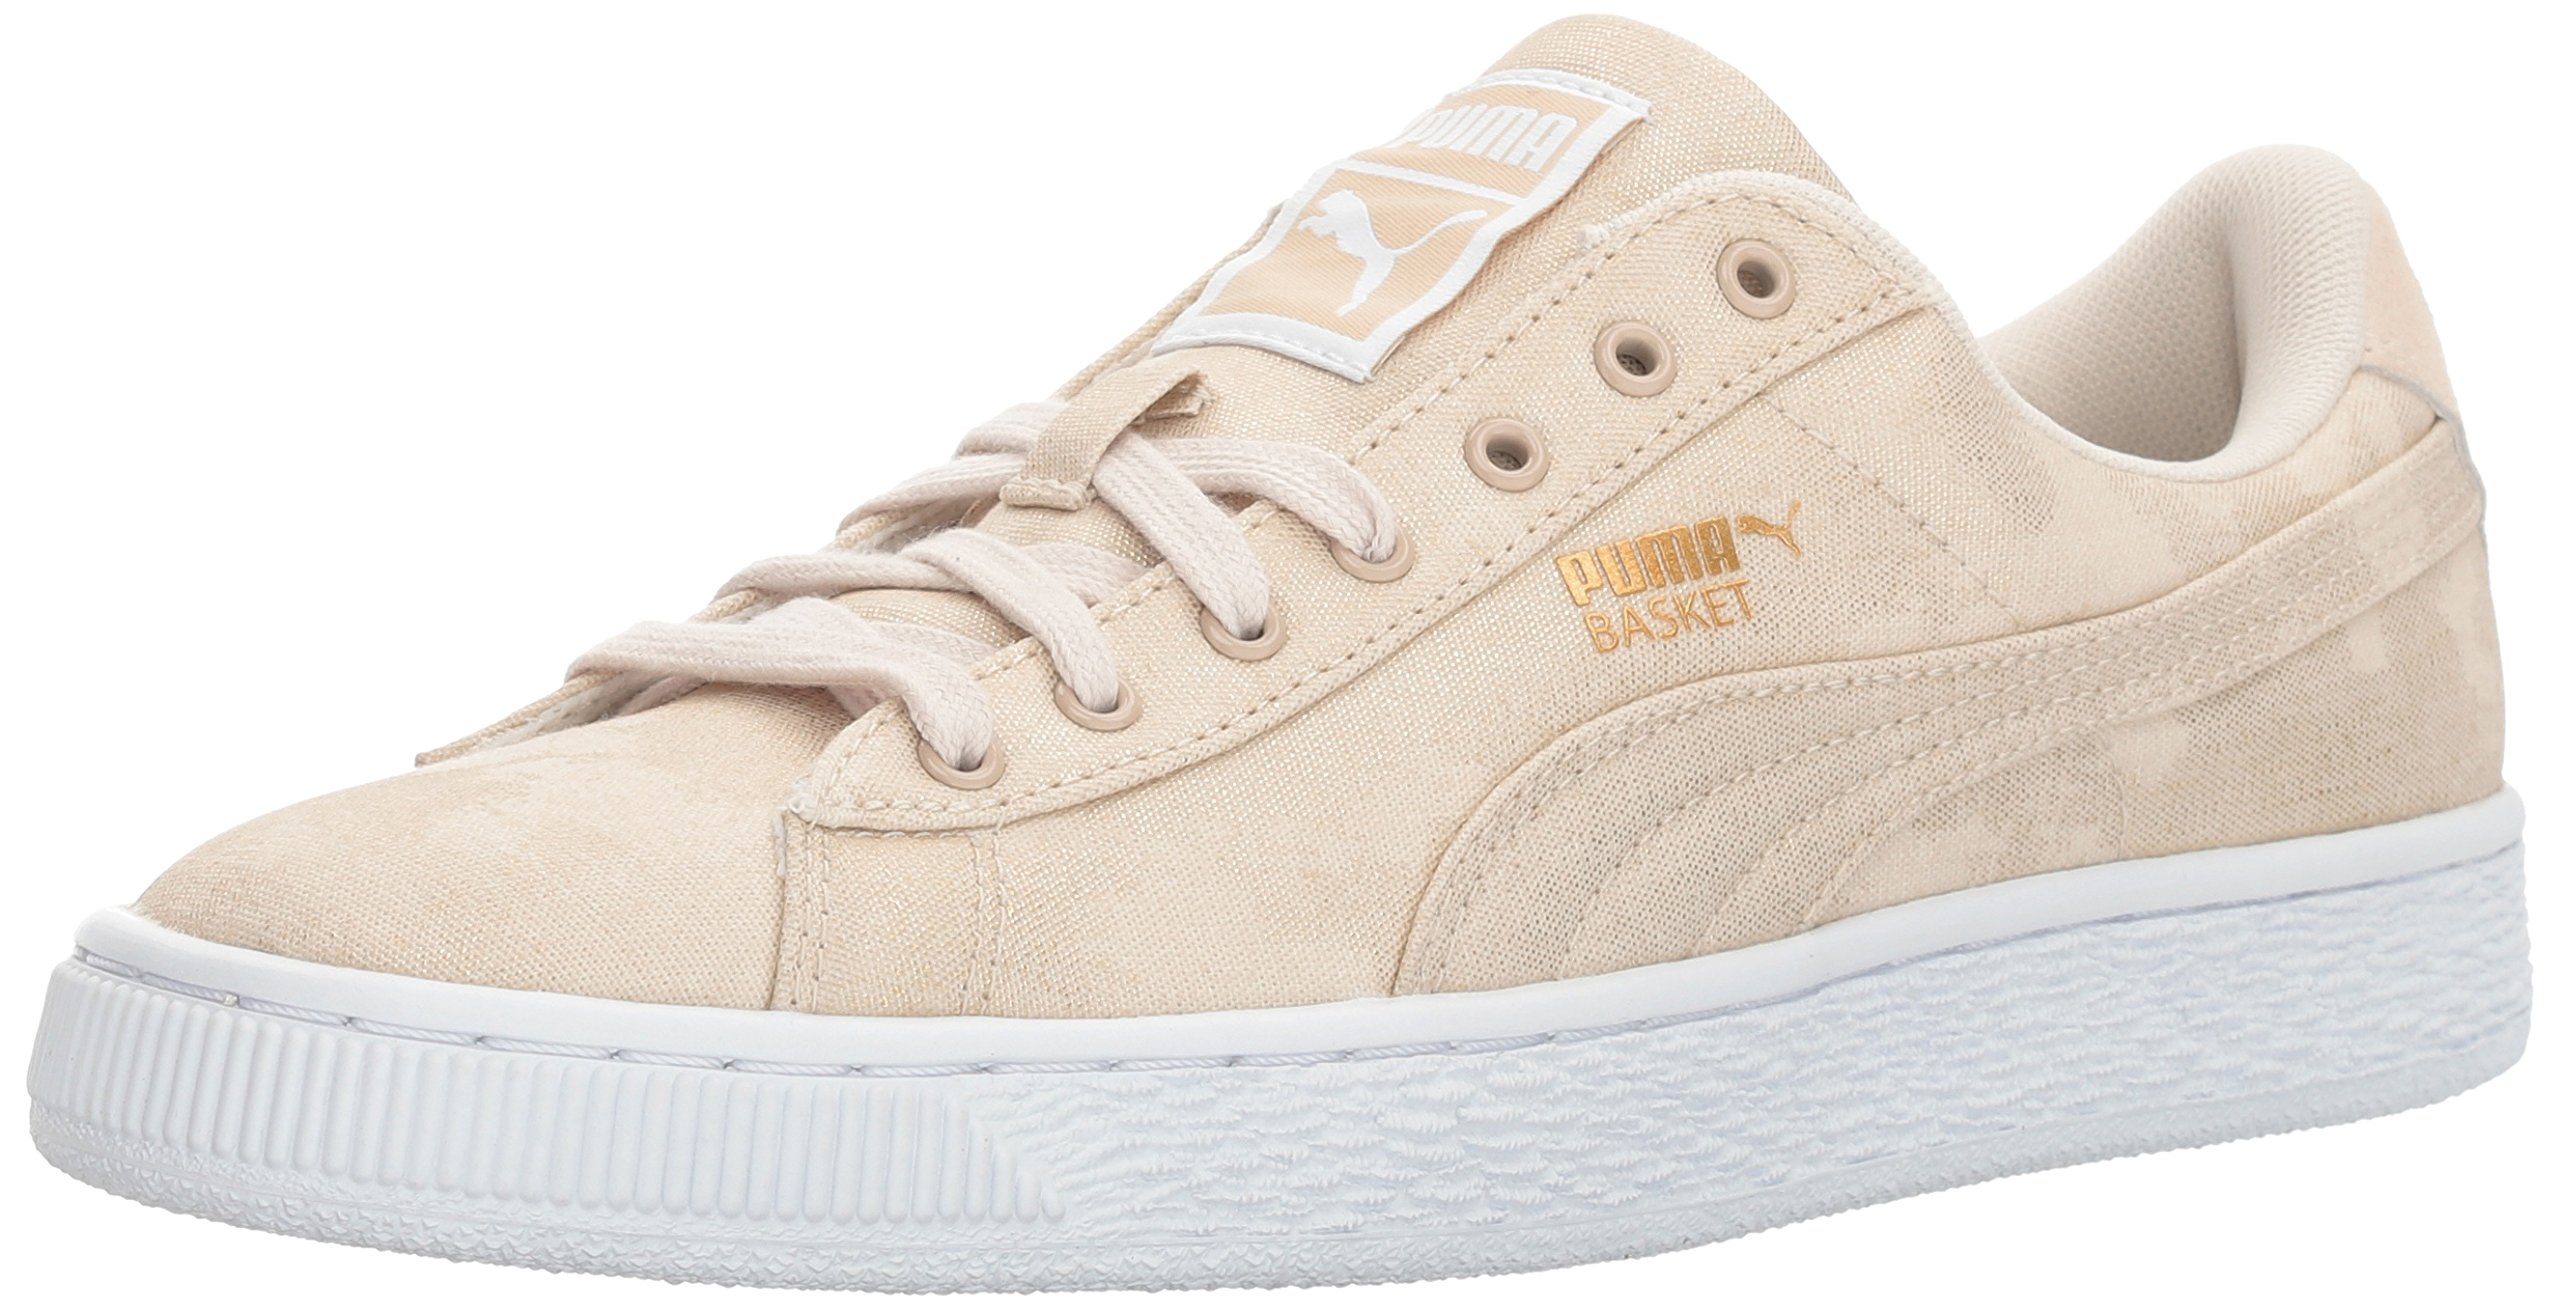 PUMA Women's Basket Denim WN's Field Hockey Shoe Oatmeal White, 8.5 M US